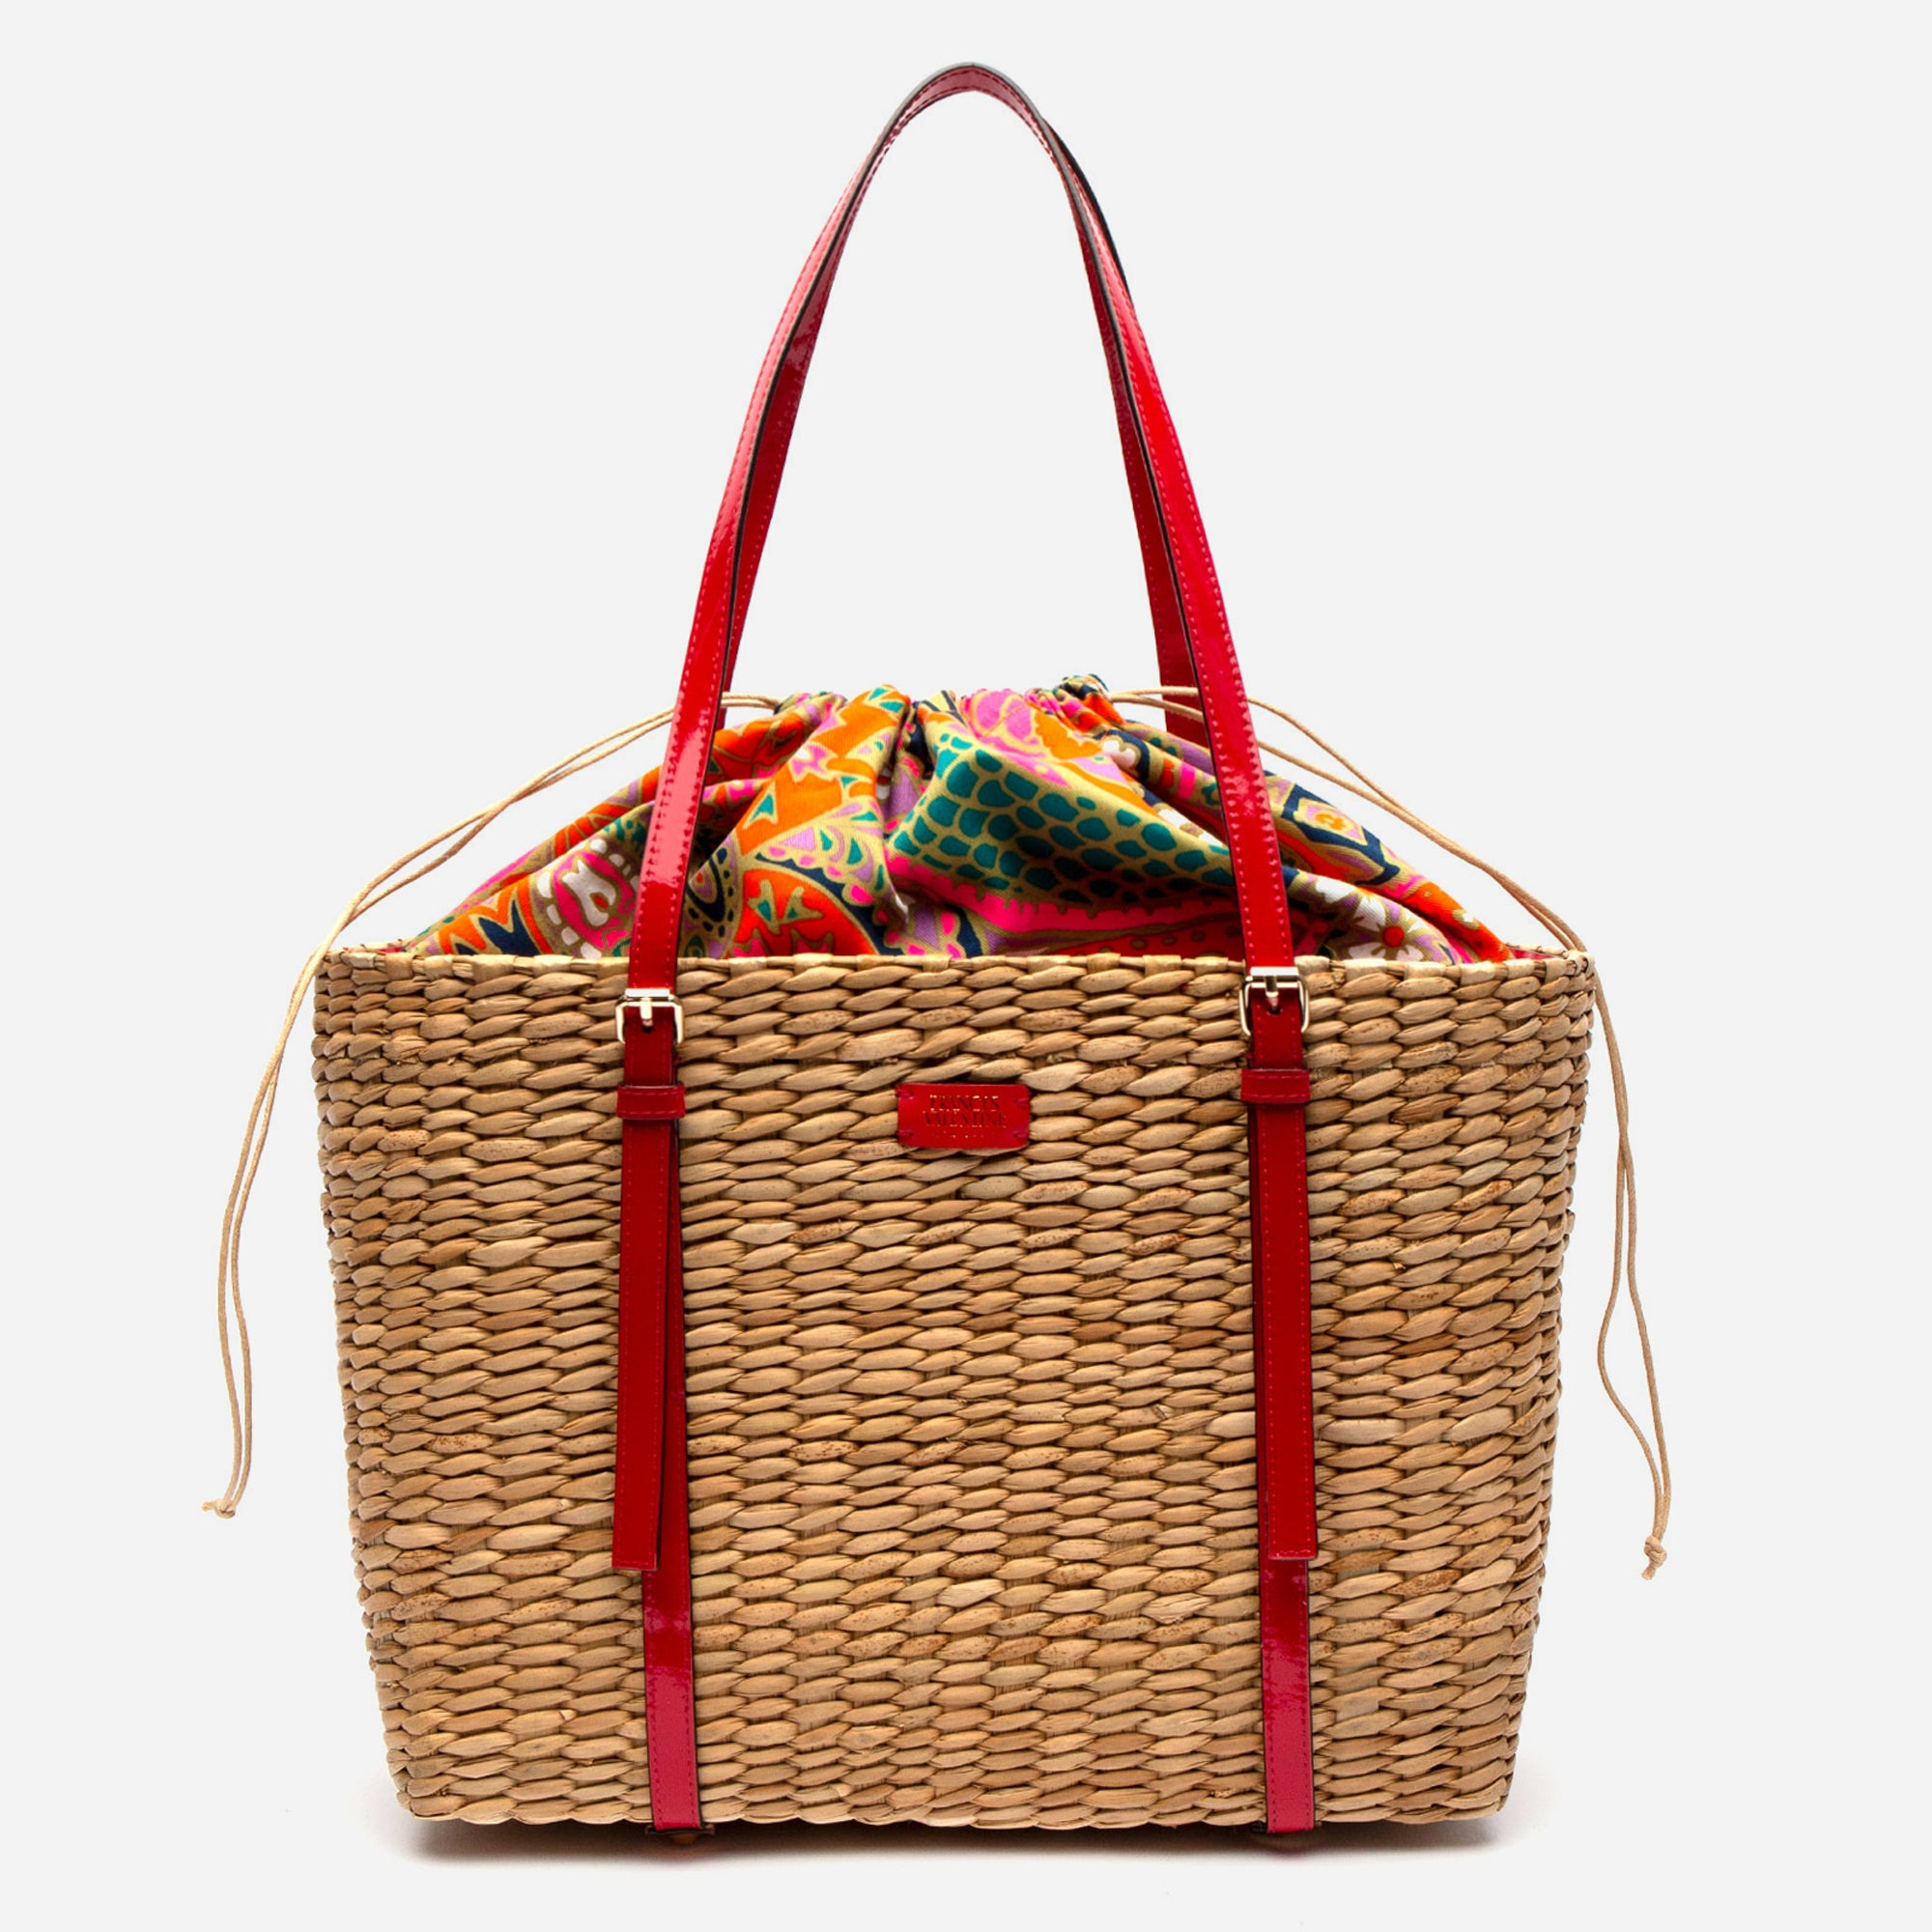 Large Woven Basket Tote Patent Red - Frances Valentine